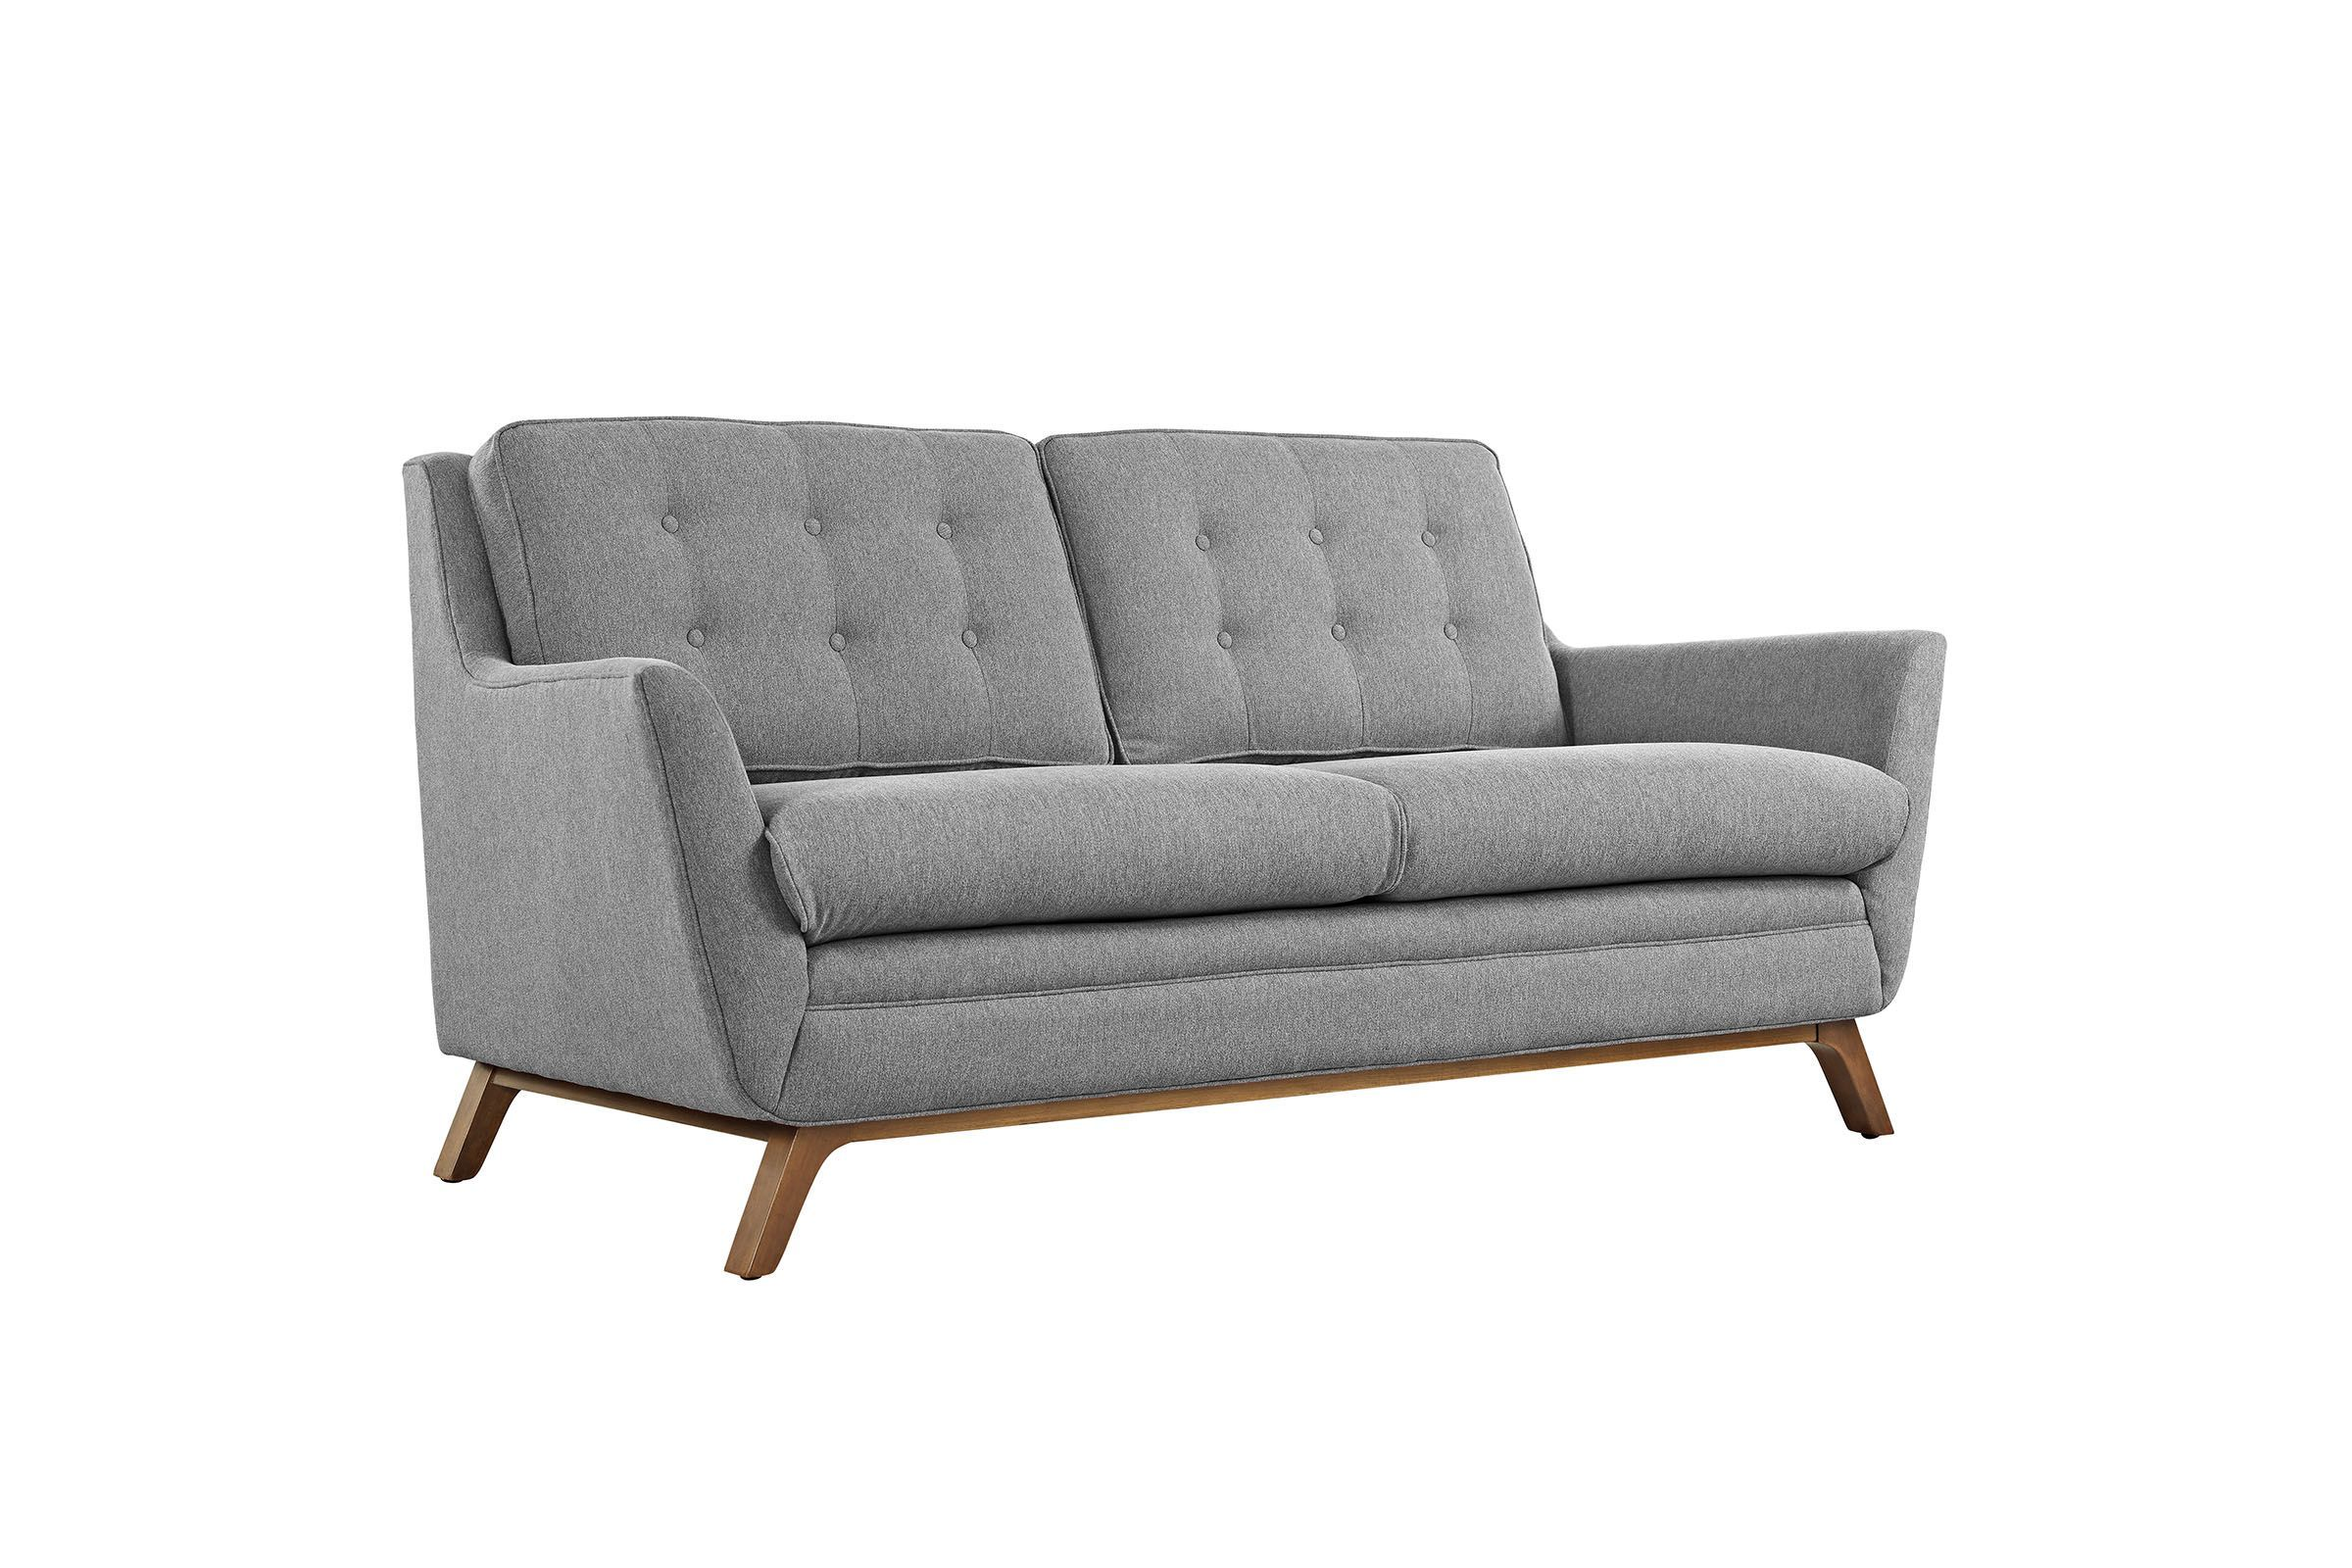 Beguile Upholstered Fabric Loveseat In Expectation Grey By Modway